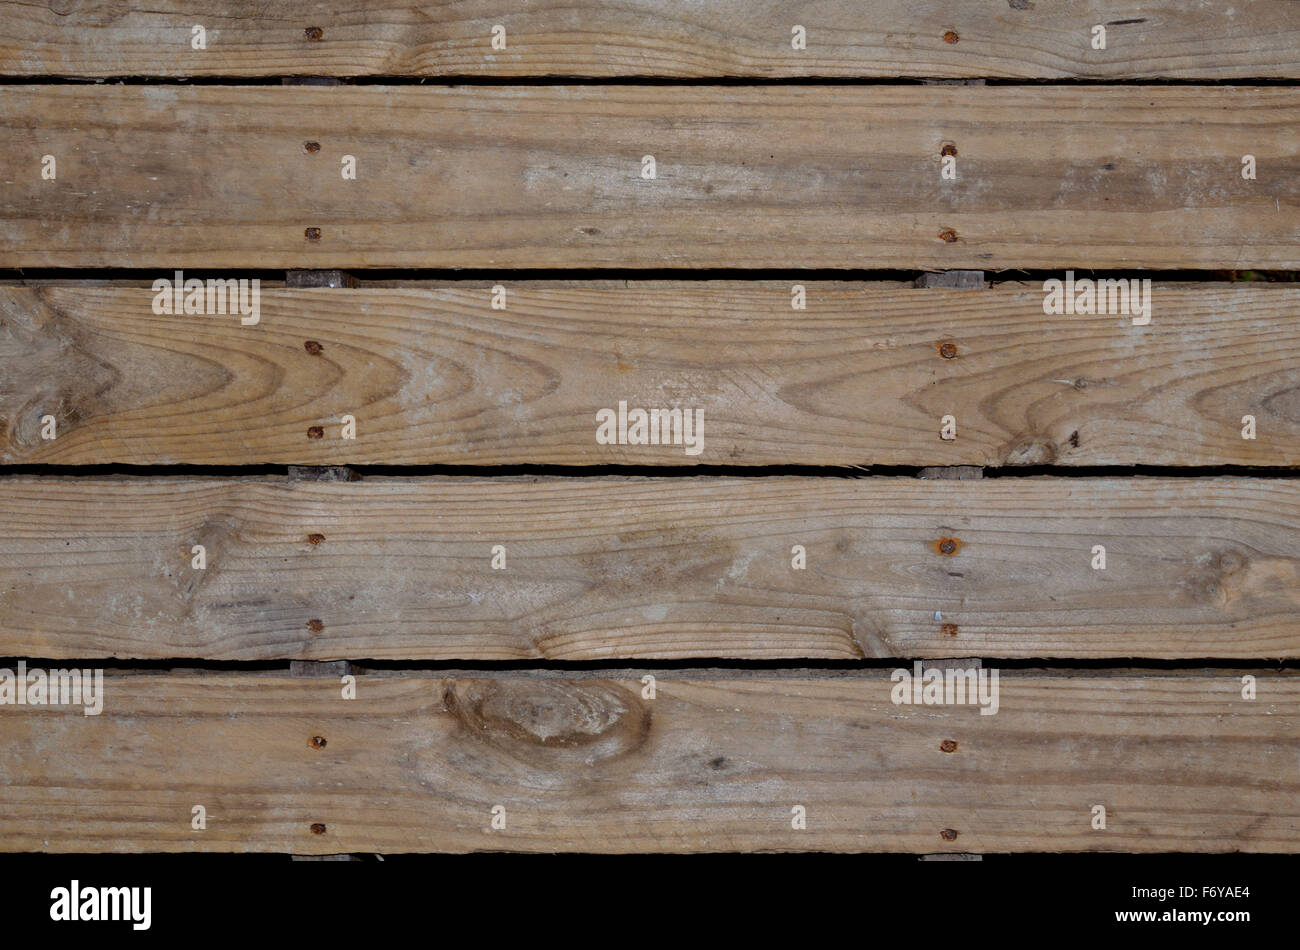 Pallet Wood For Rustic Background Wood Boards With Knots And Design Stock Photo Alamy